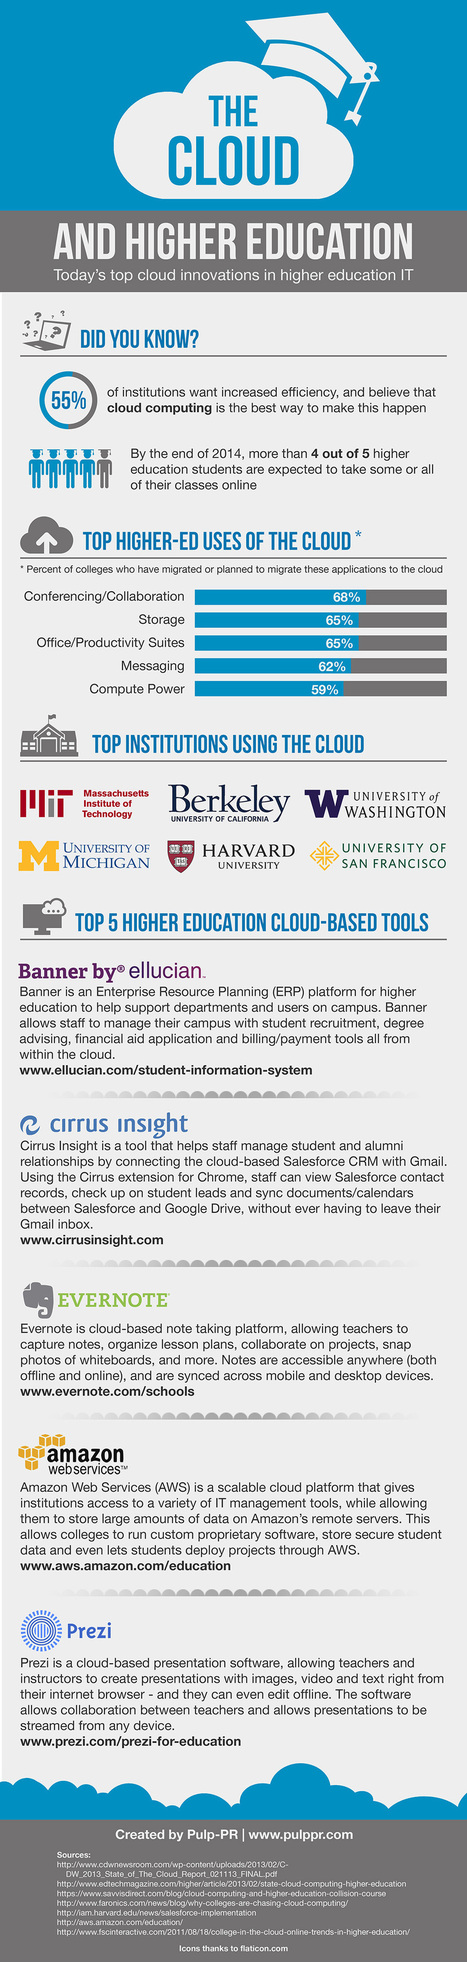 INFOGRAPHIC: The Cloud & Higher Education | Easy Ways To Get Your Own List | Scoop.it